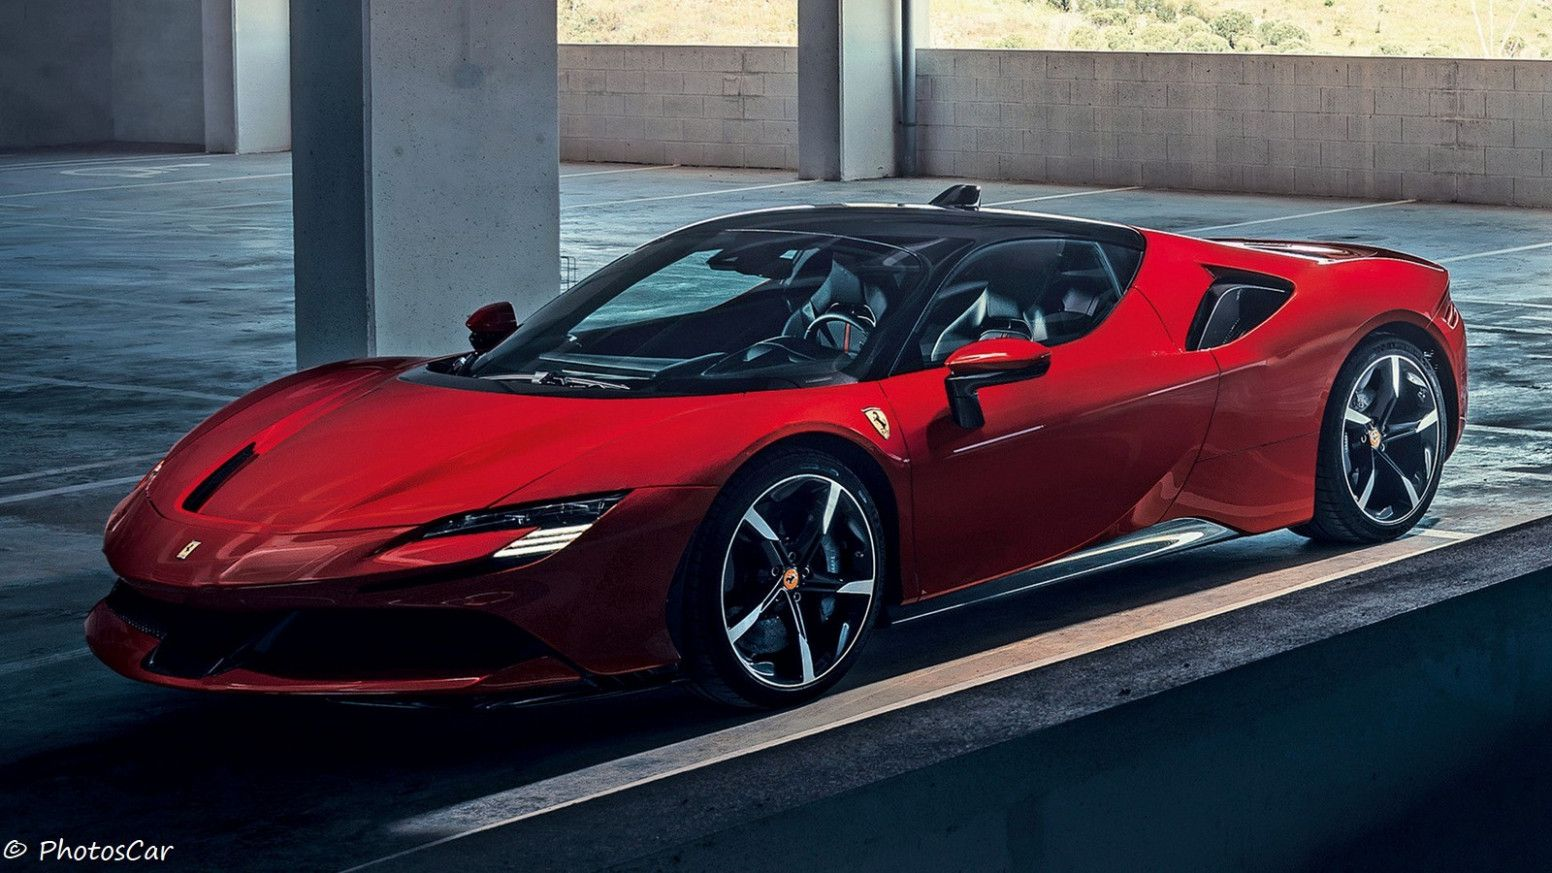 11 Wallpaper Nouvelle Ferrari 2020 In 2020 Super Cars Ferrari Porsche Taycan